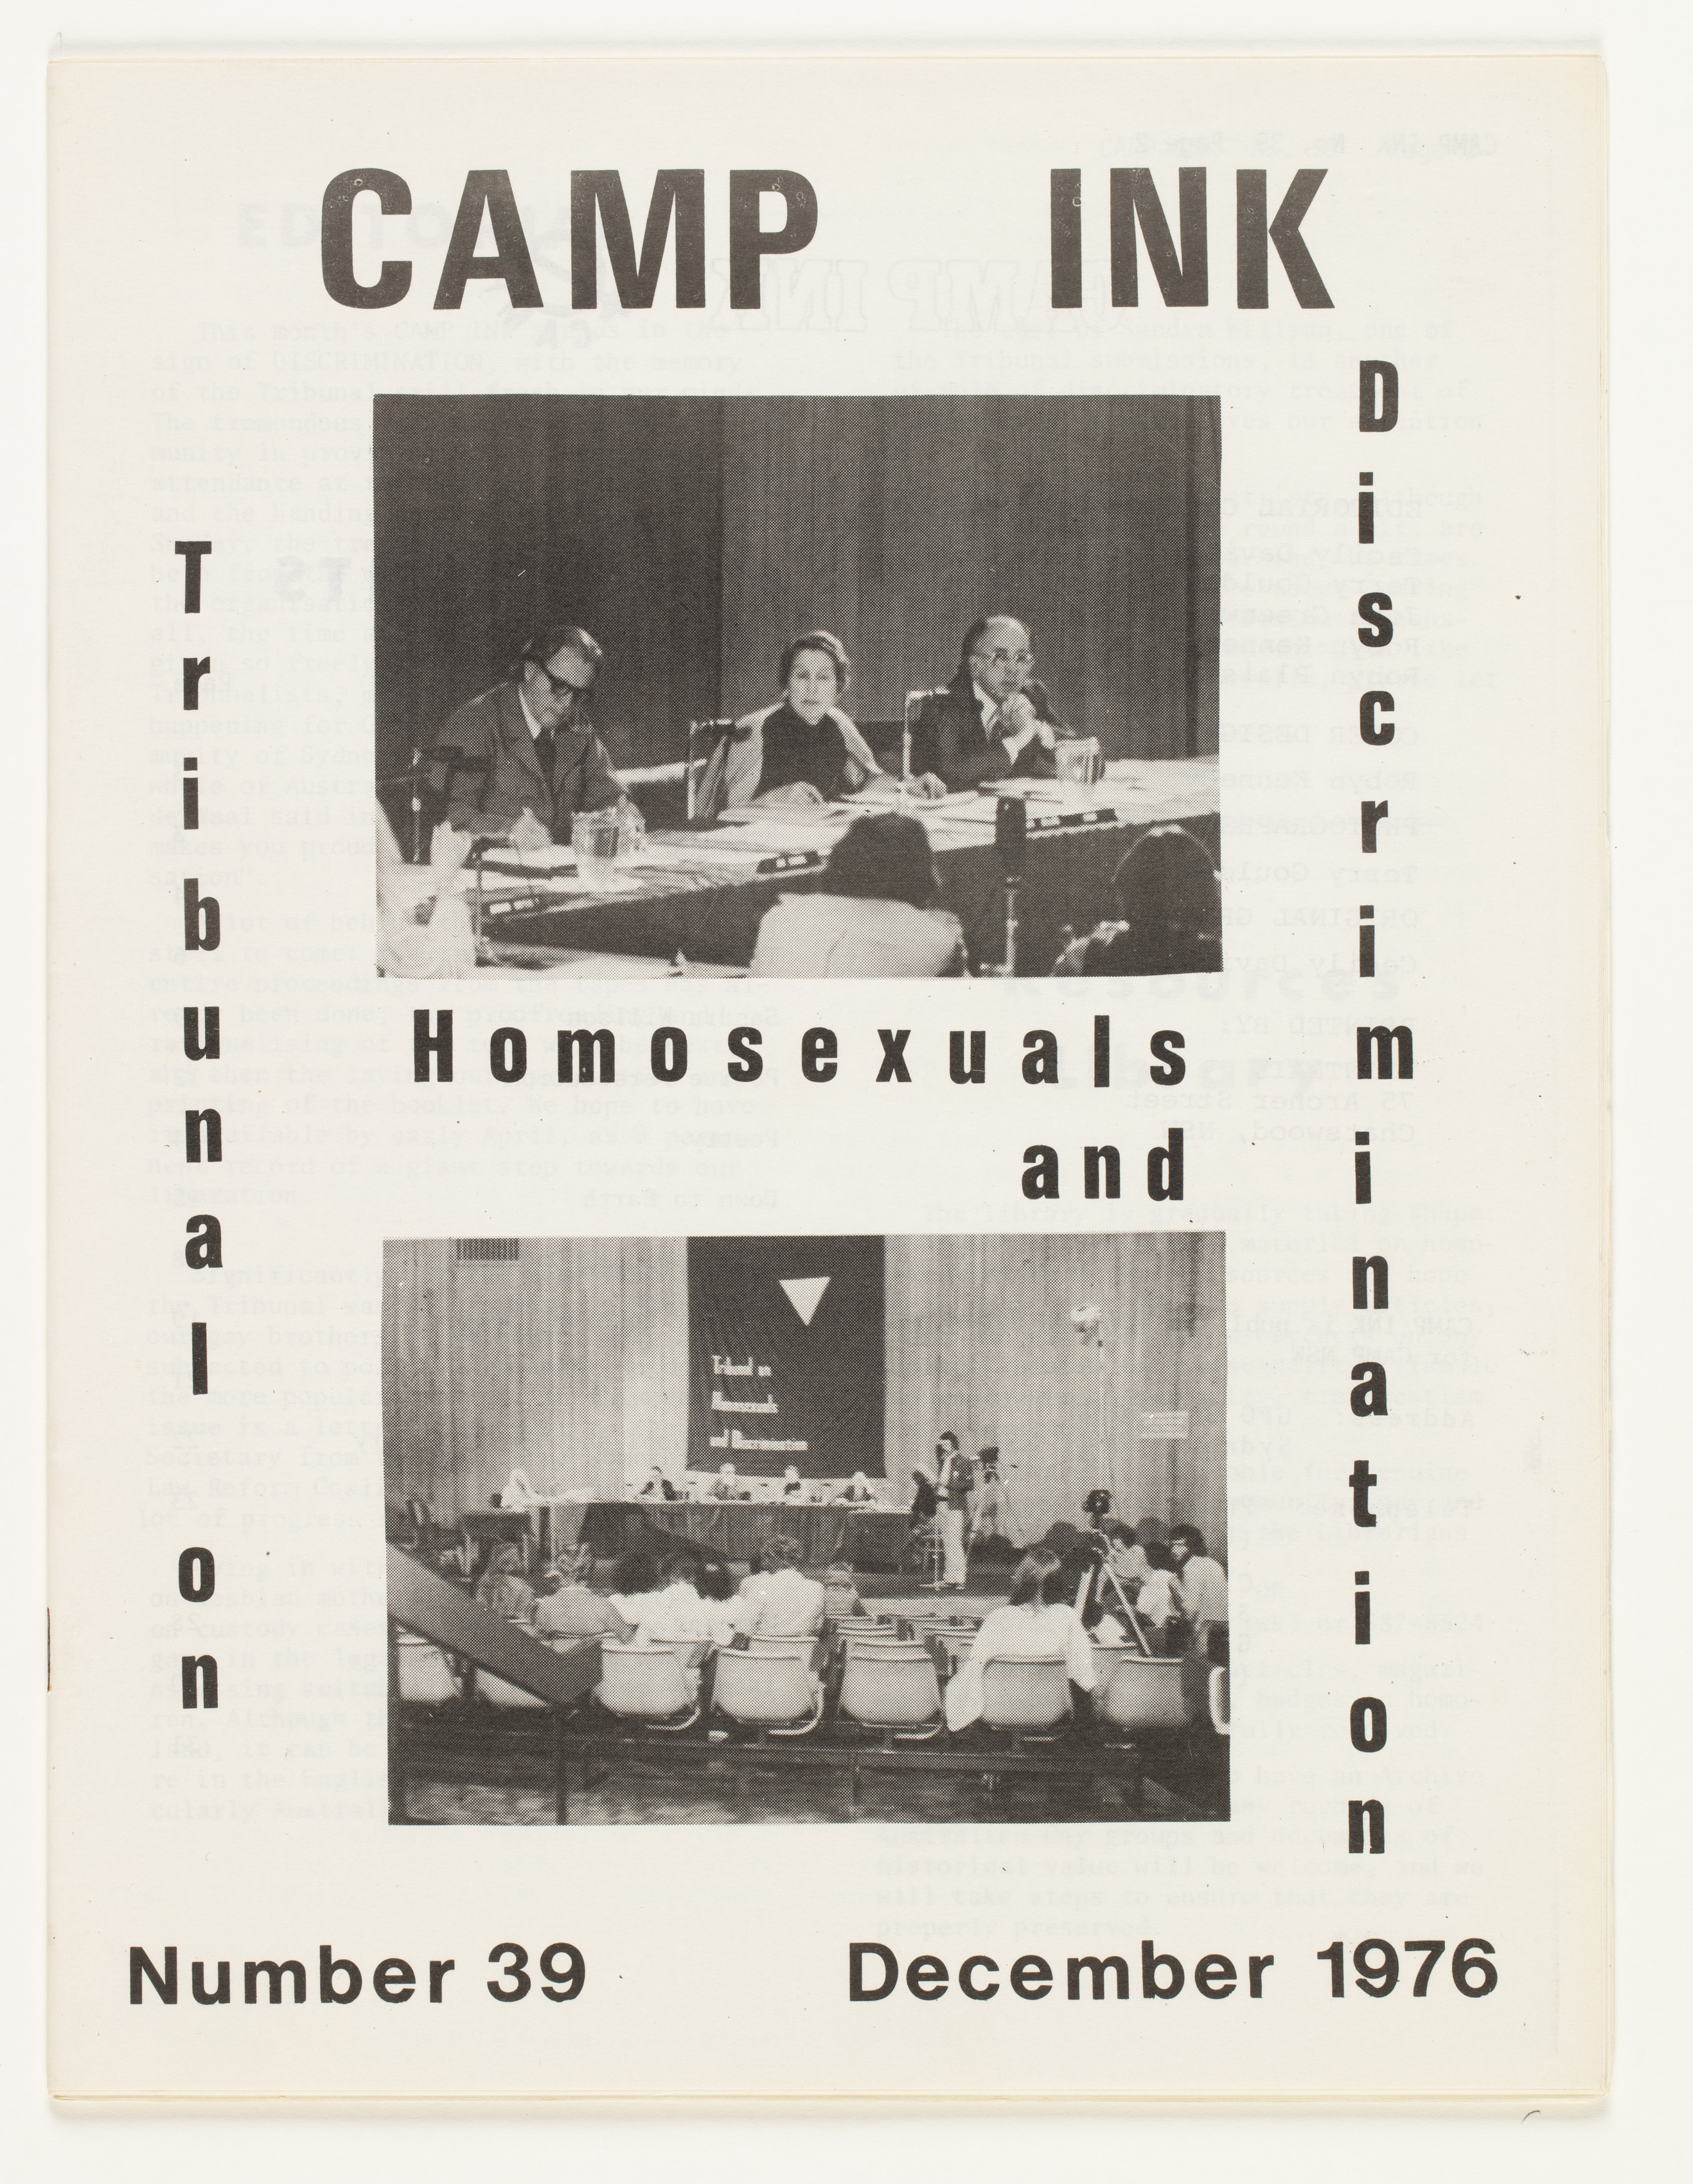 Camp Ink. Number 39 (December 1976)